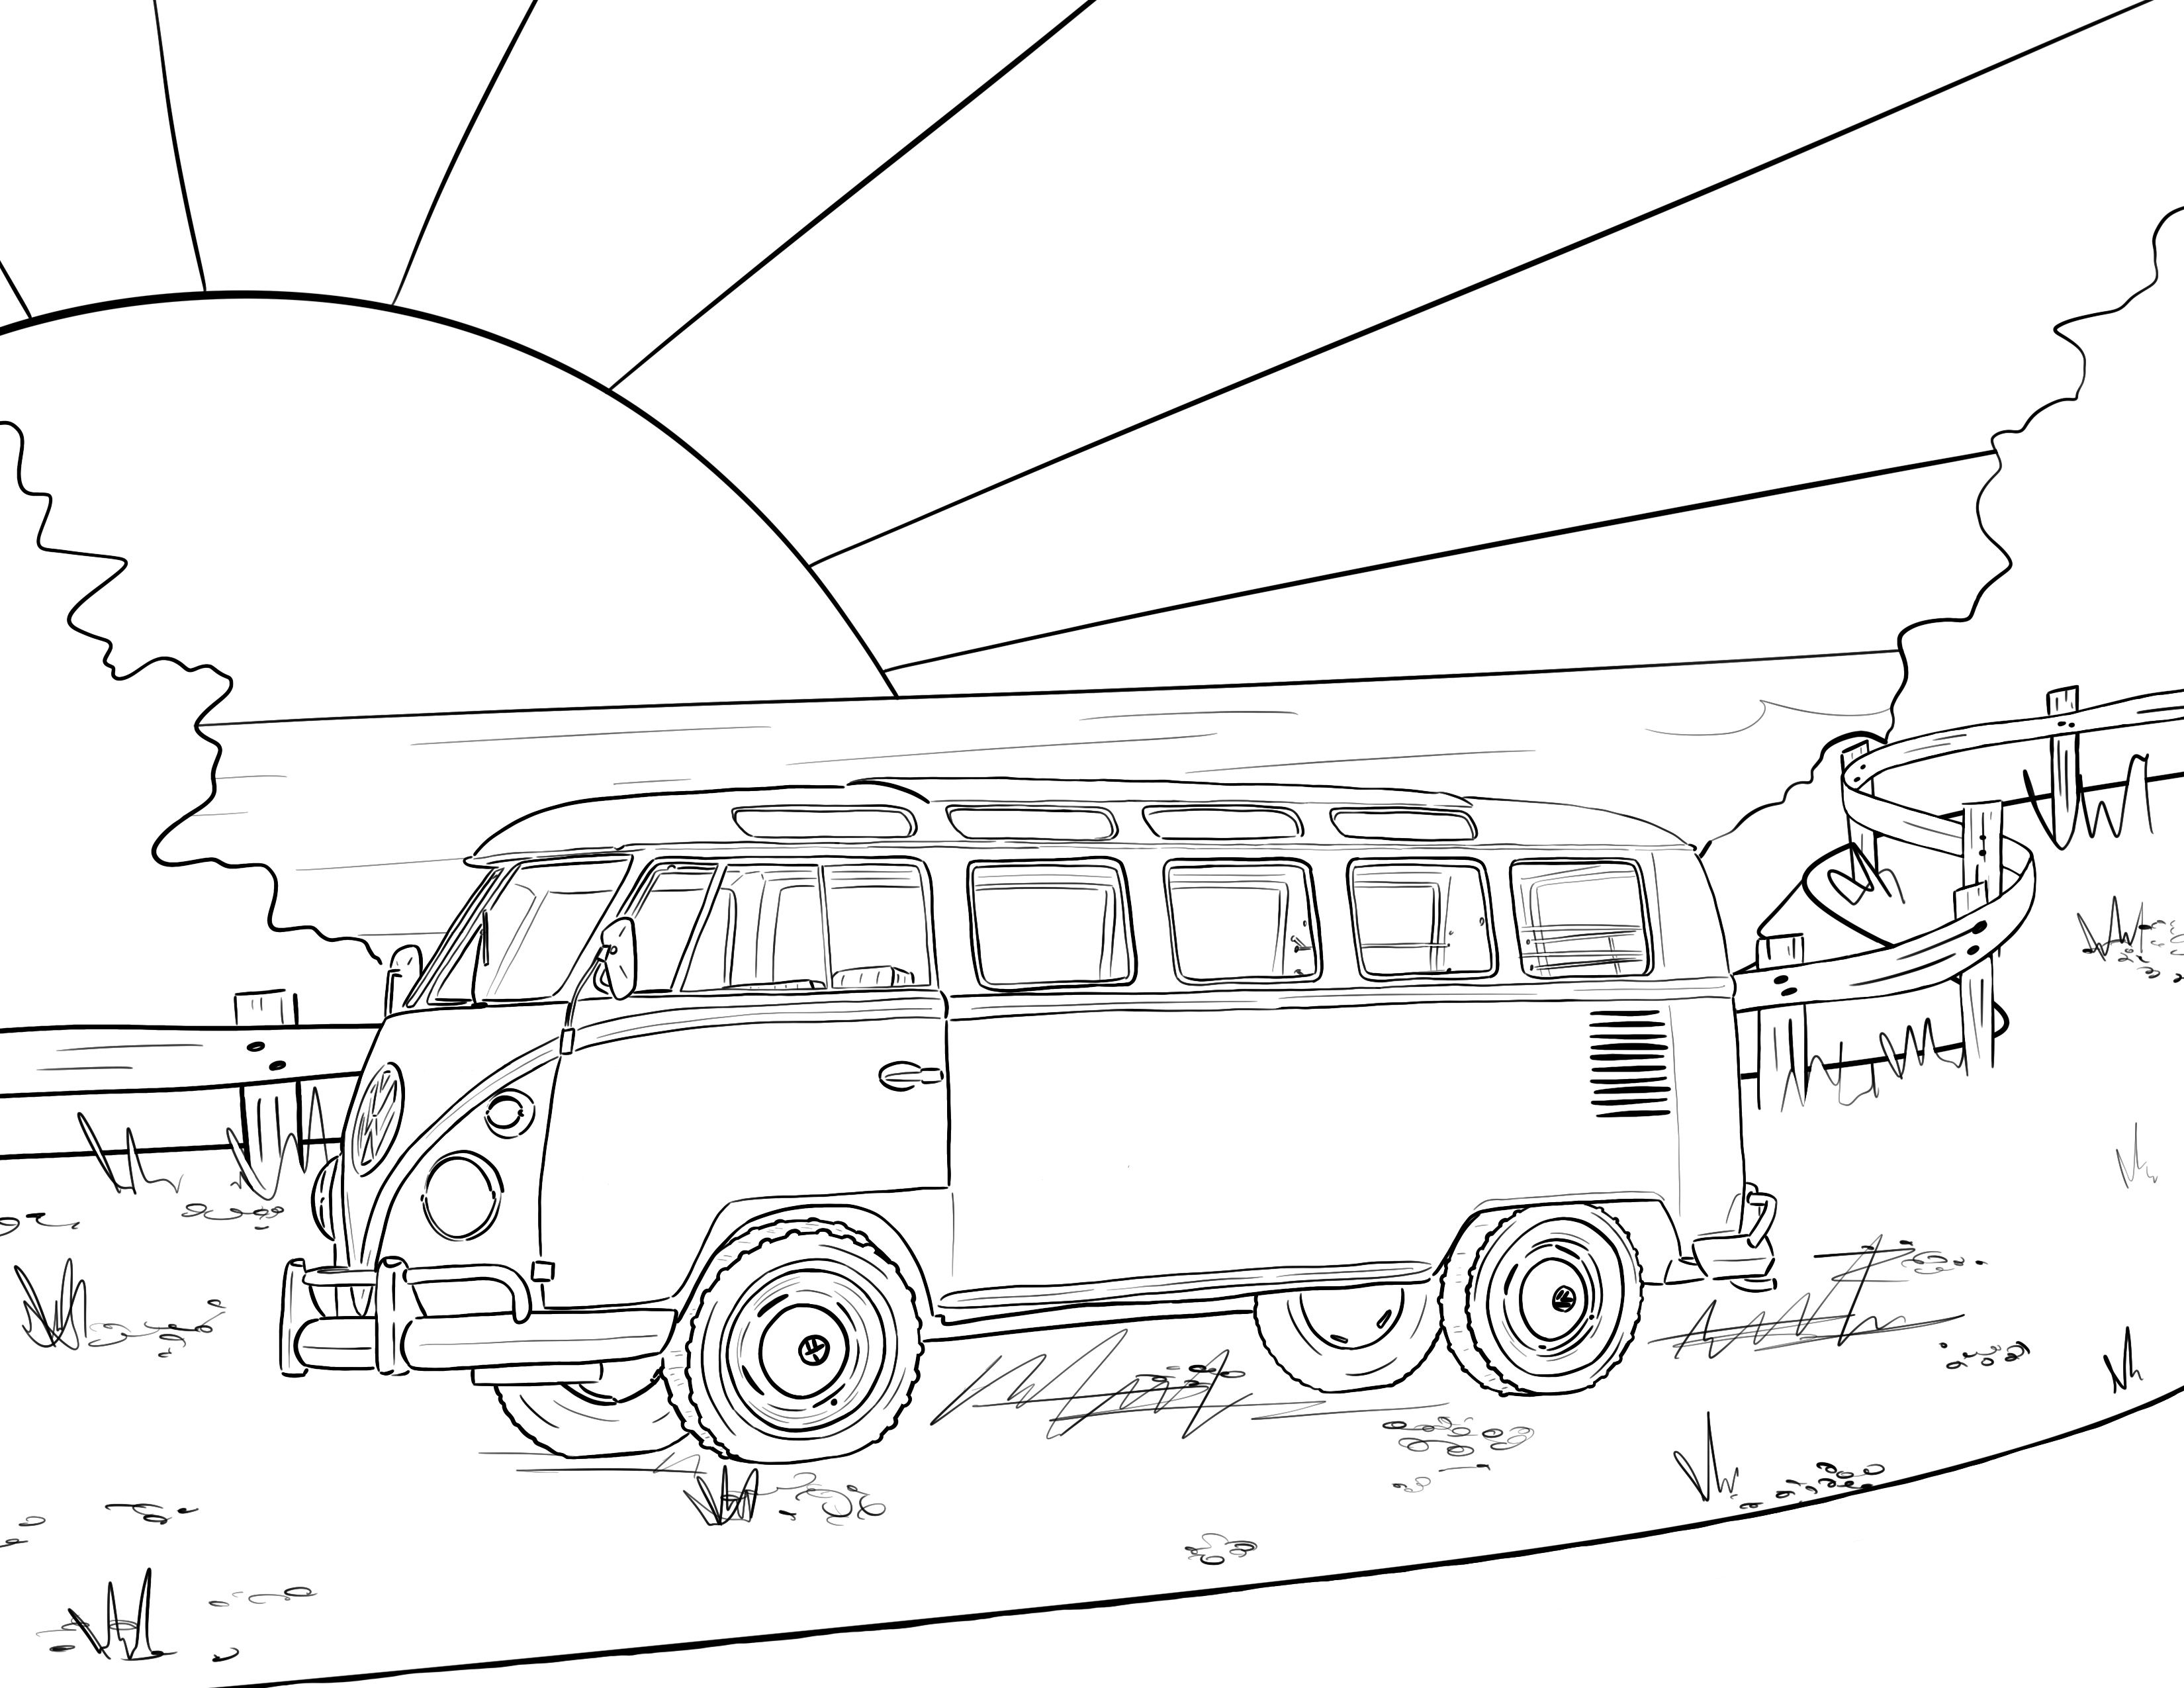 Maci Lane Coloring Page Free Download Coloring Pages Volkswagen Bus Art Bus Art